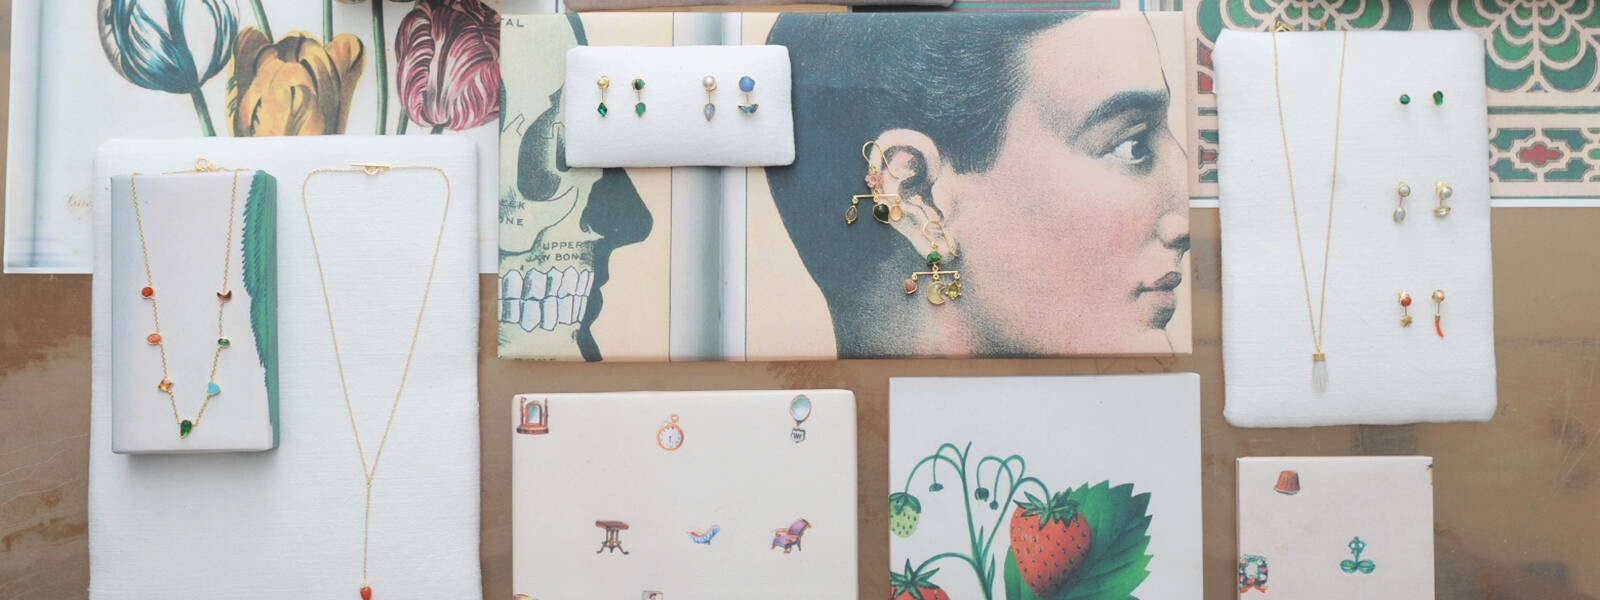 Our display of Grainne Morton Jewellery laid out on images form teh John Derian Picture Book.